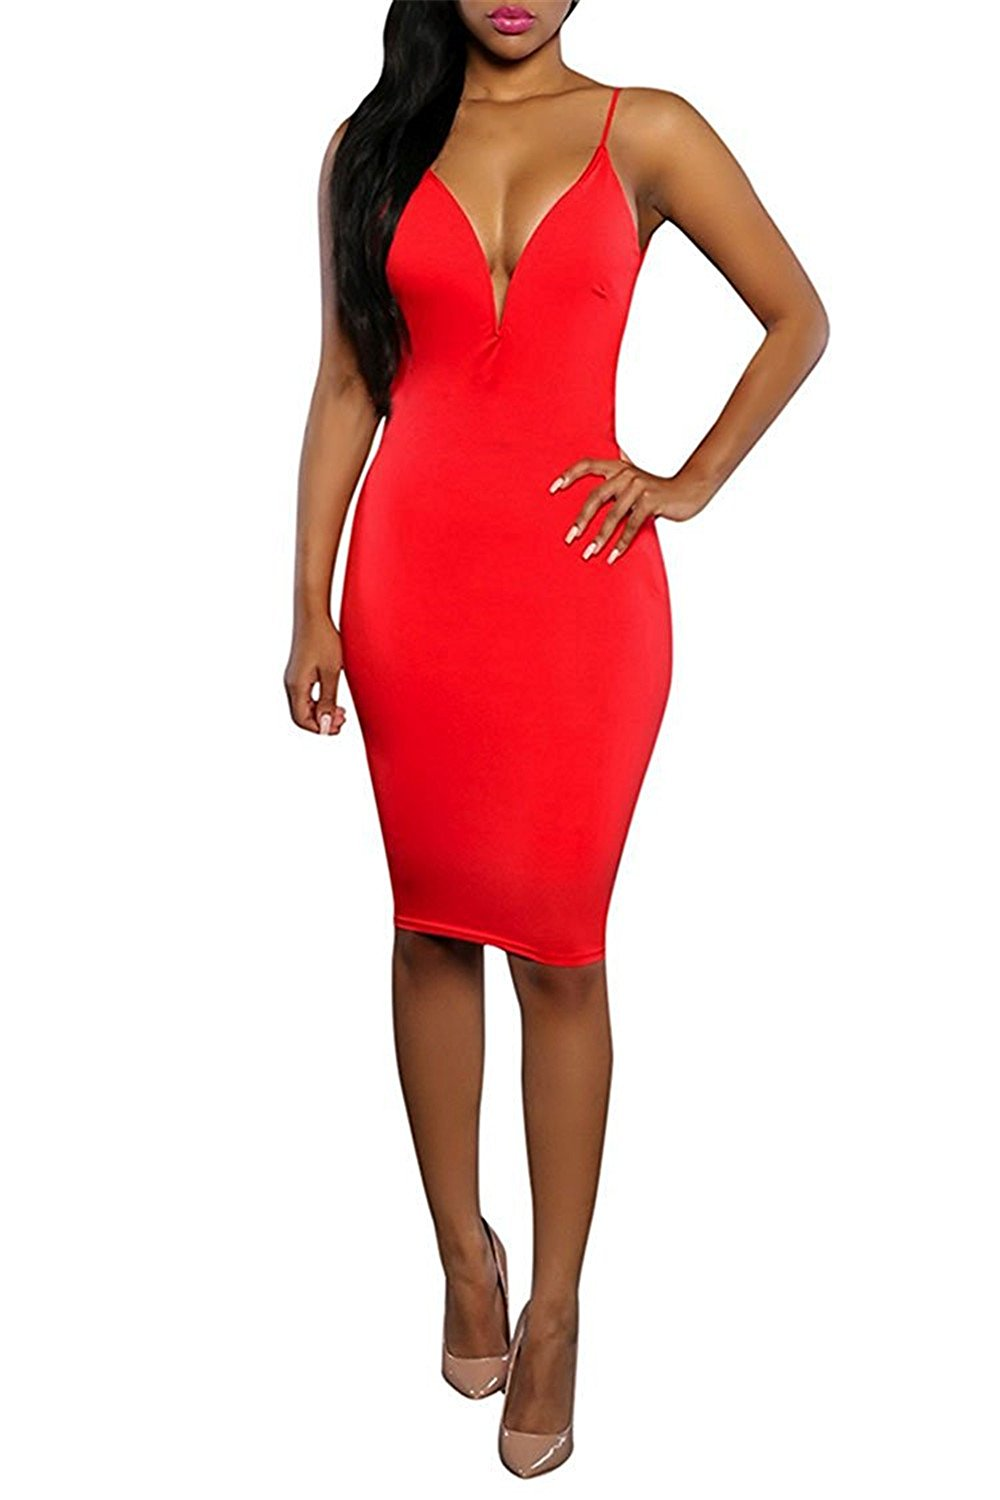 d176d40caf Get Quotations · Fordbox Latest Womens Sleeveless Bodycon Midi Dress  Backless Plunge Club Dress